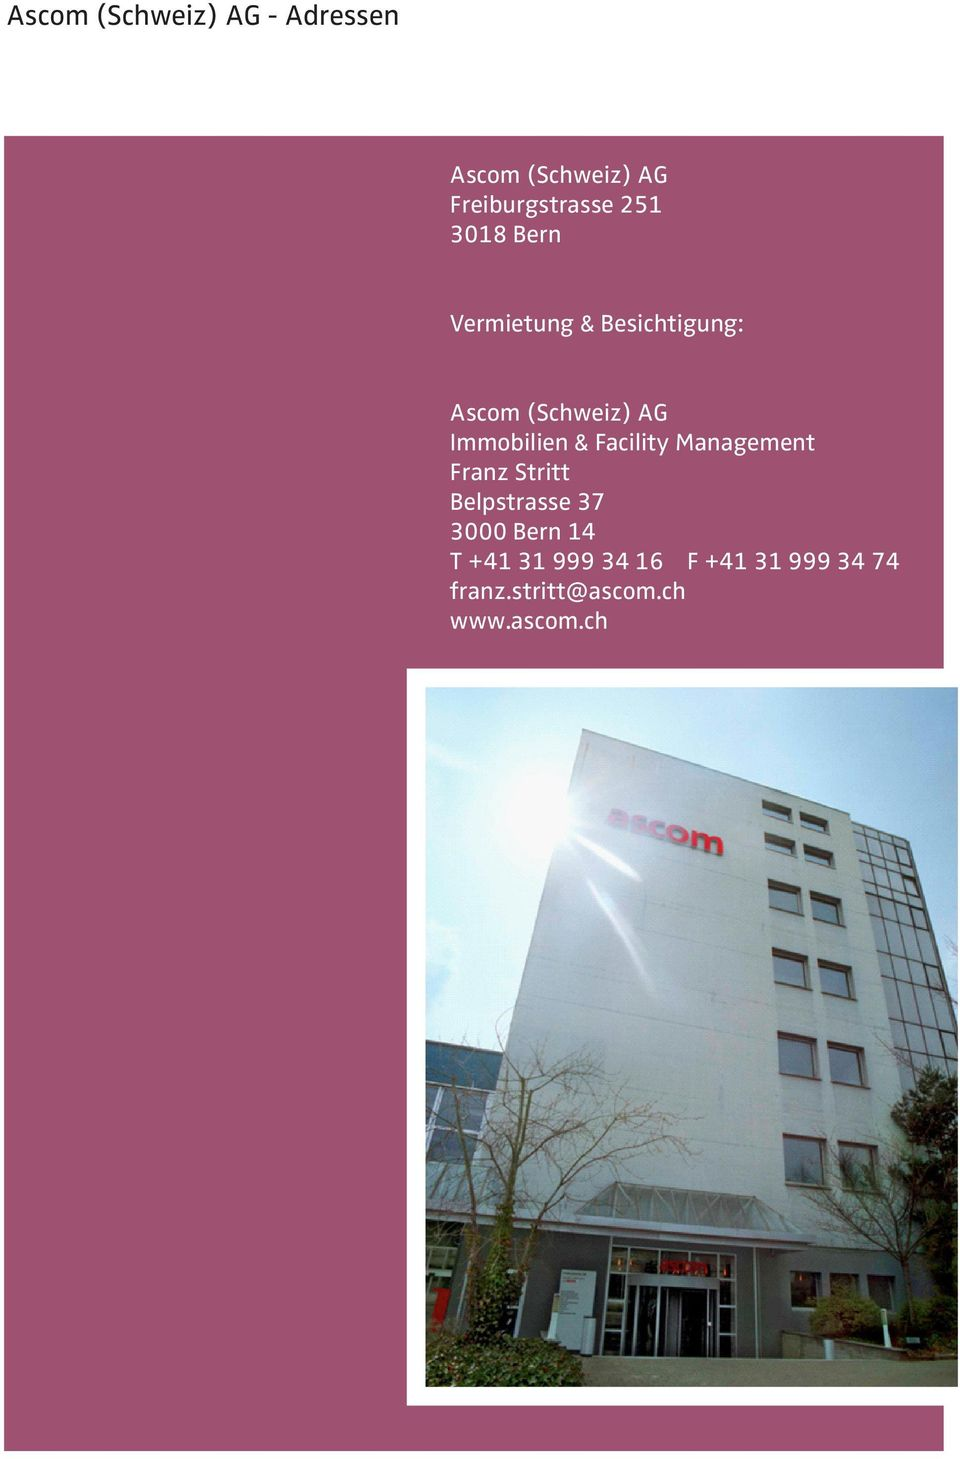 Immobilien & Facility Management Franz Stritt Belpstrasse 37 3000